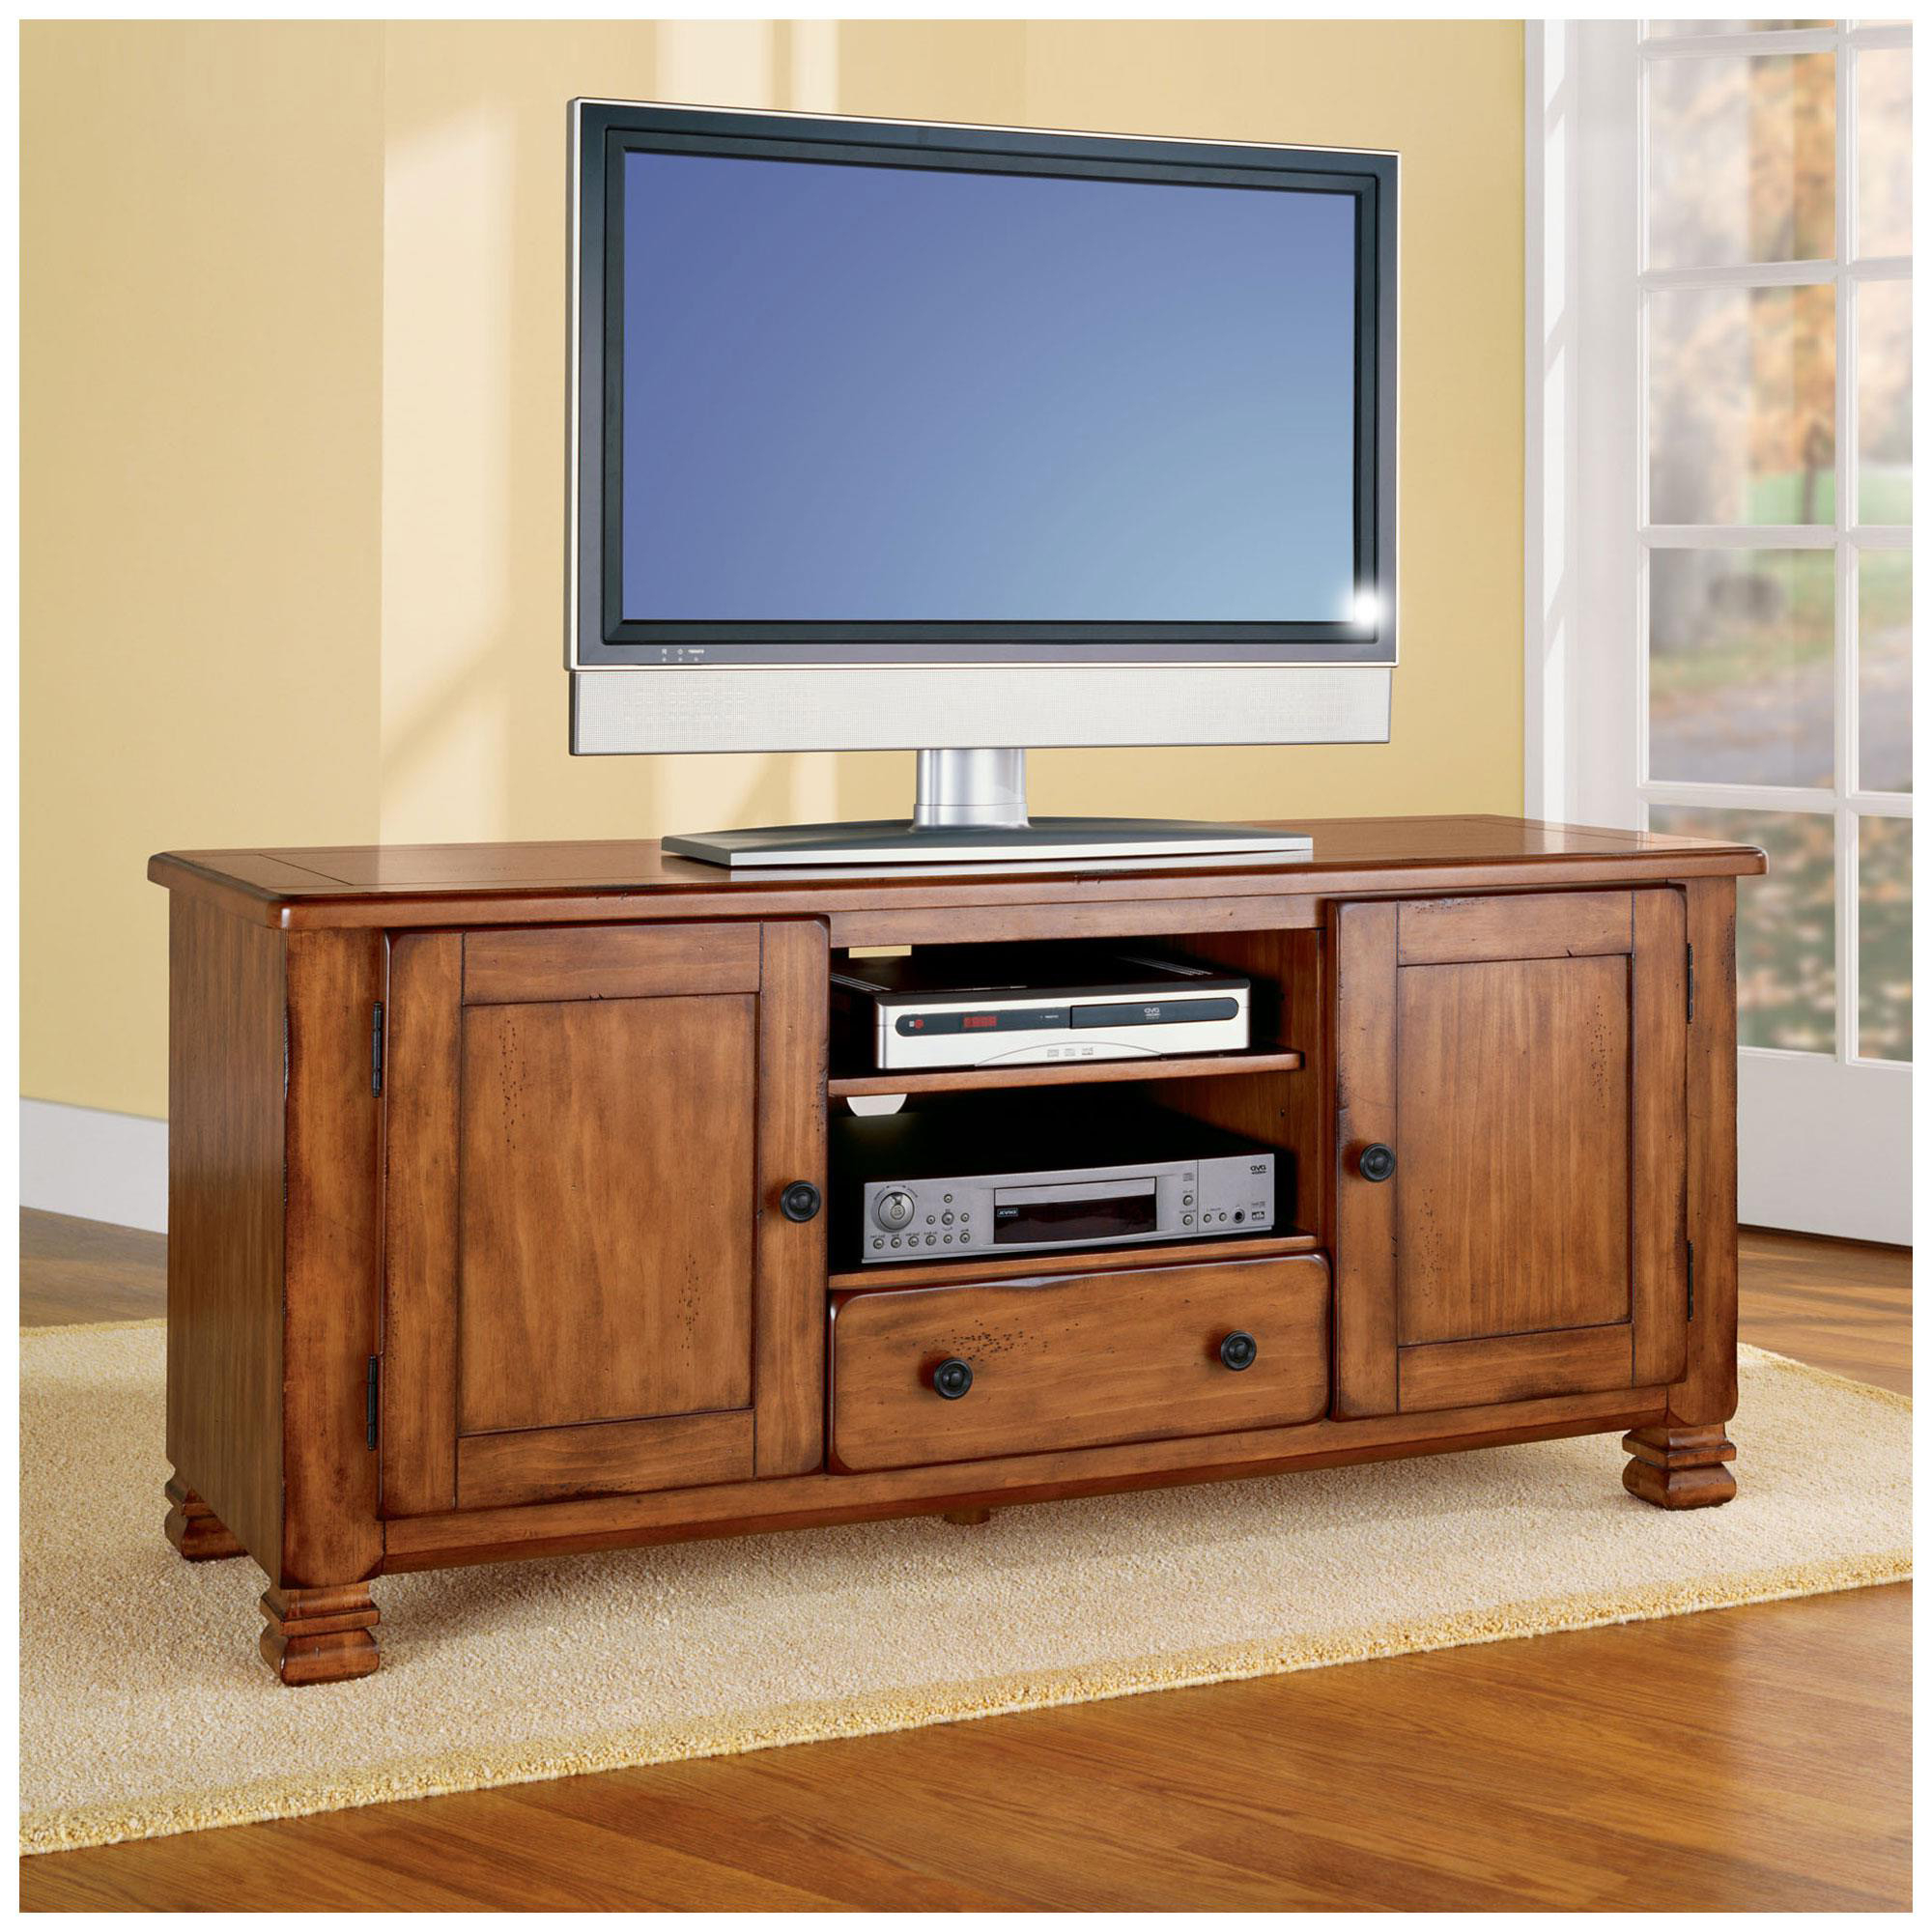 Recent Wooden Tv Stands For Flat Screens Regarding Amish Corner Tv Stand Solid Wood Console Mission Style Stands For (View 16 of 20)